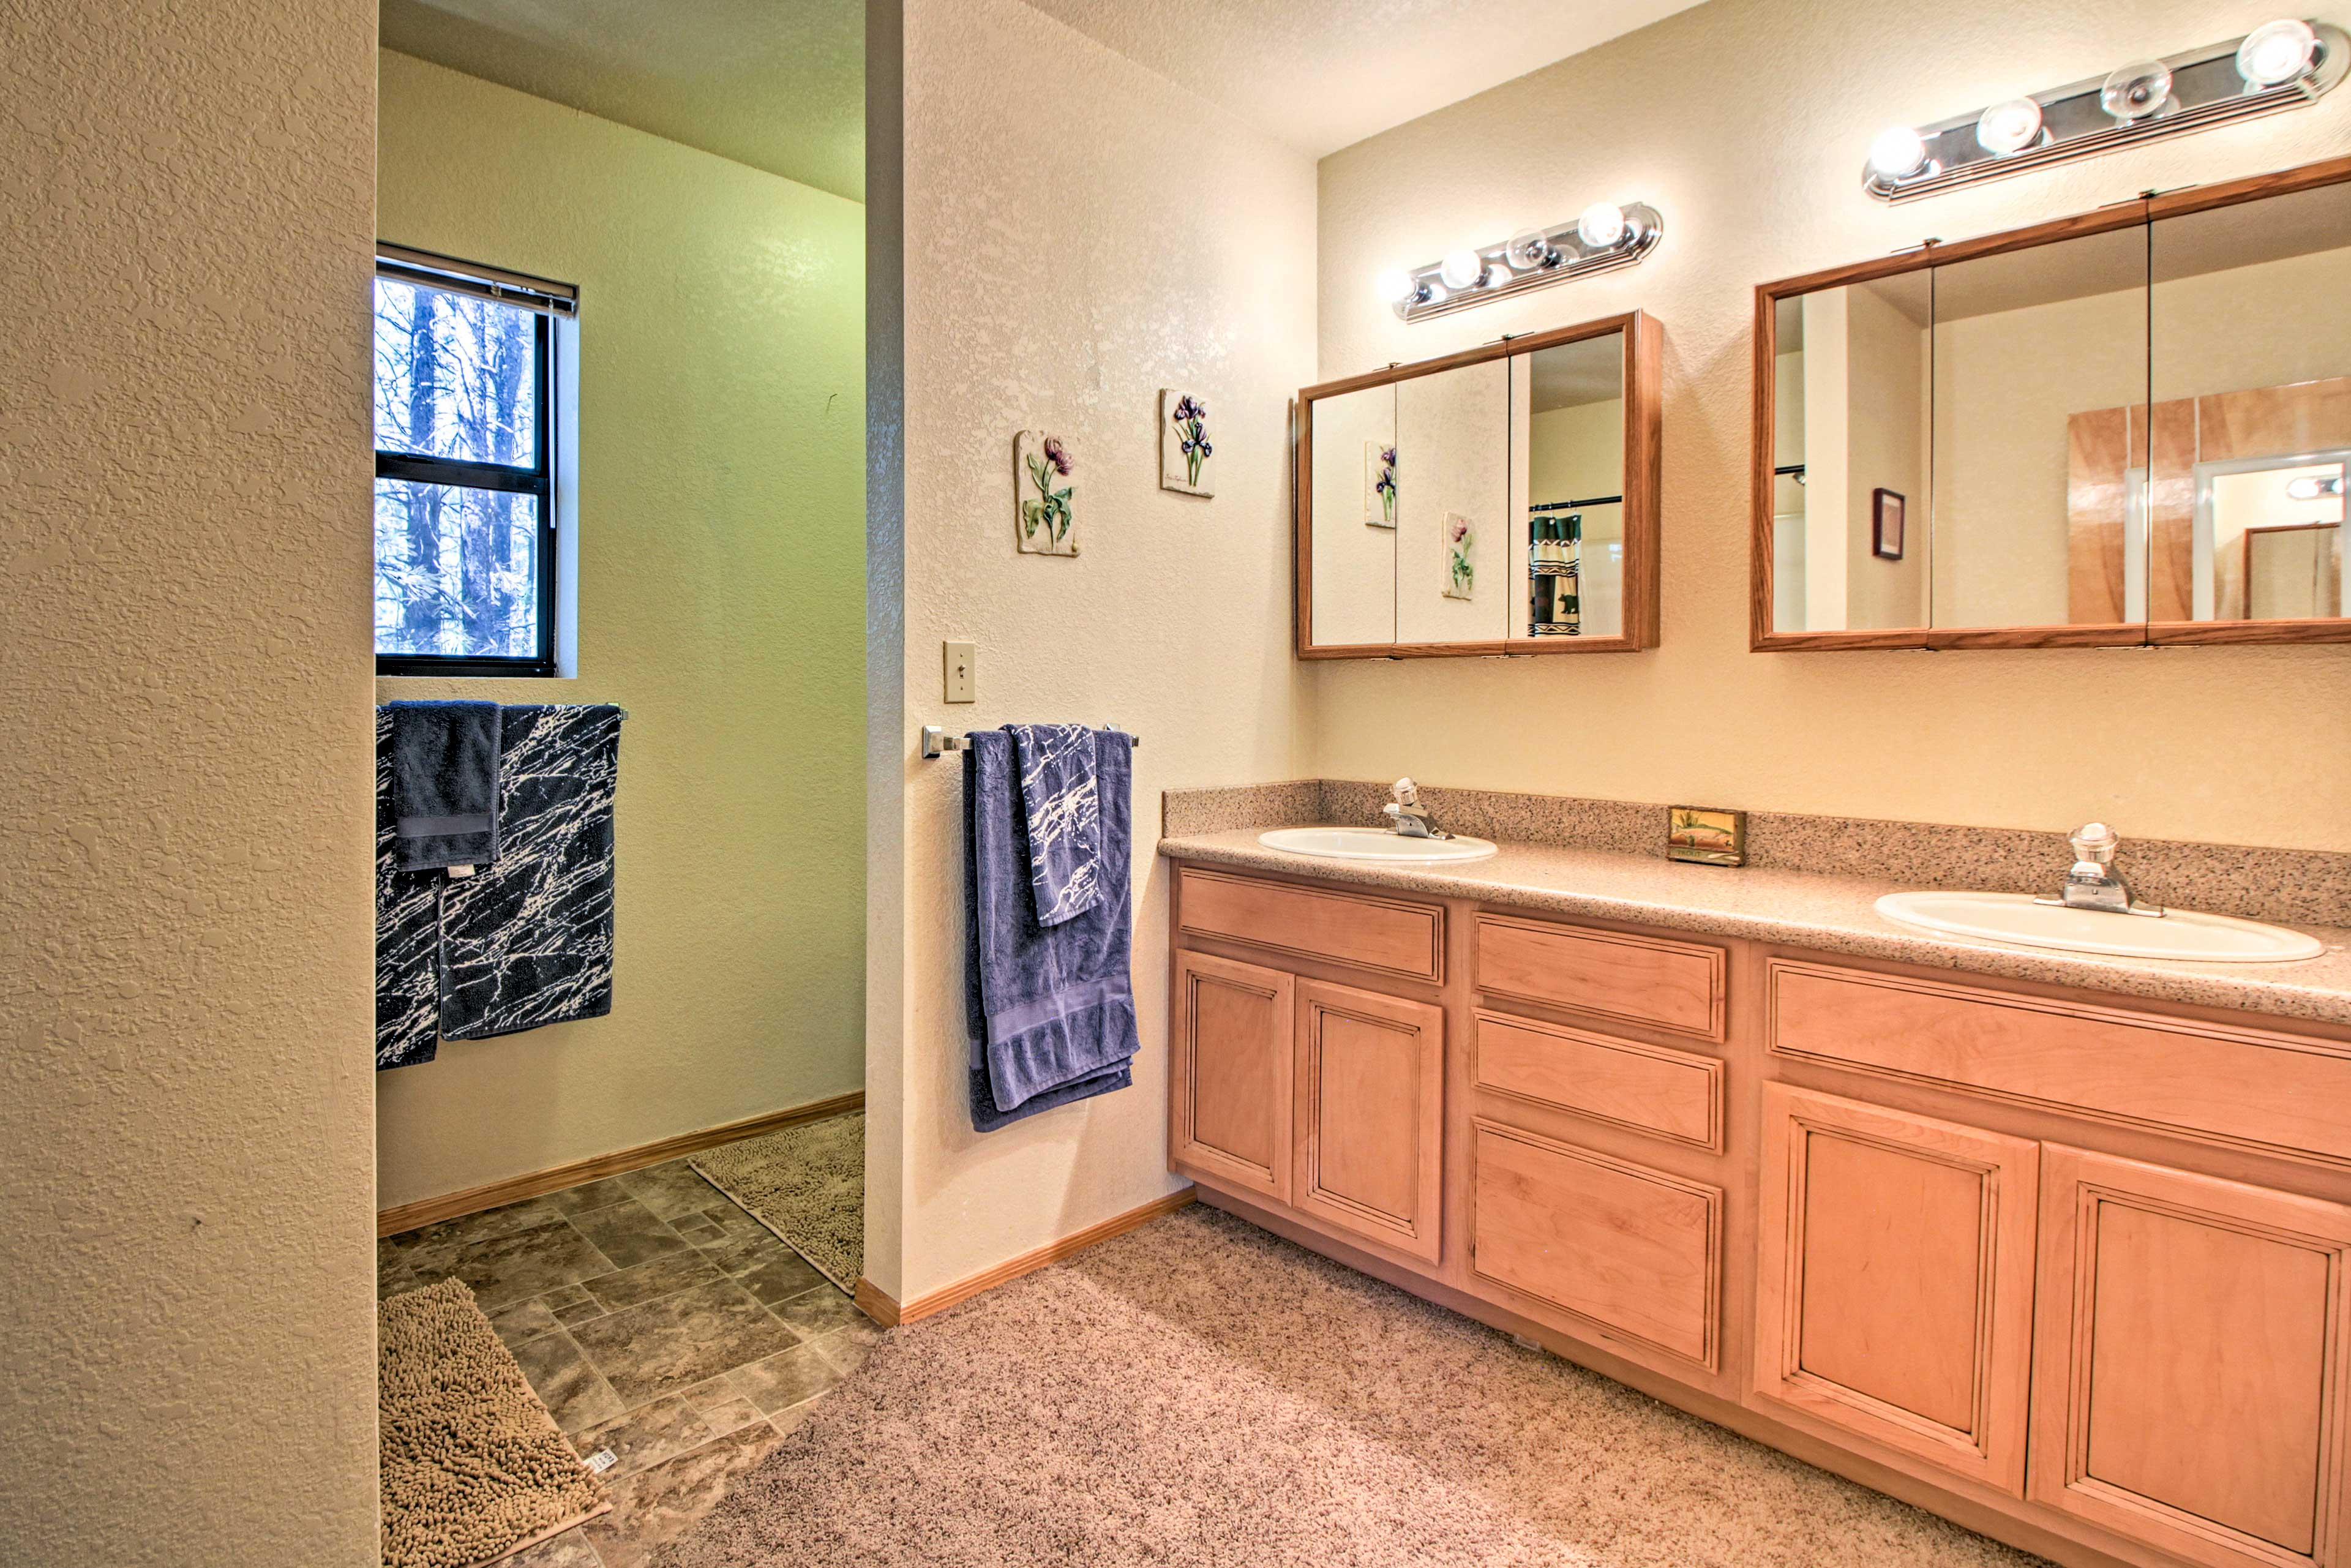 Two sinks make it easy for everyone to get cleaned up.